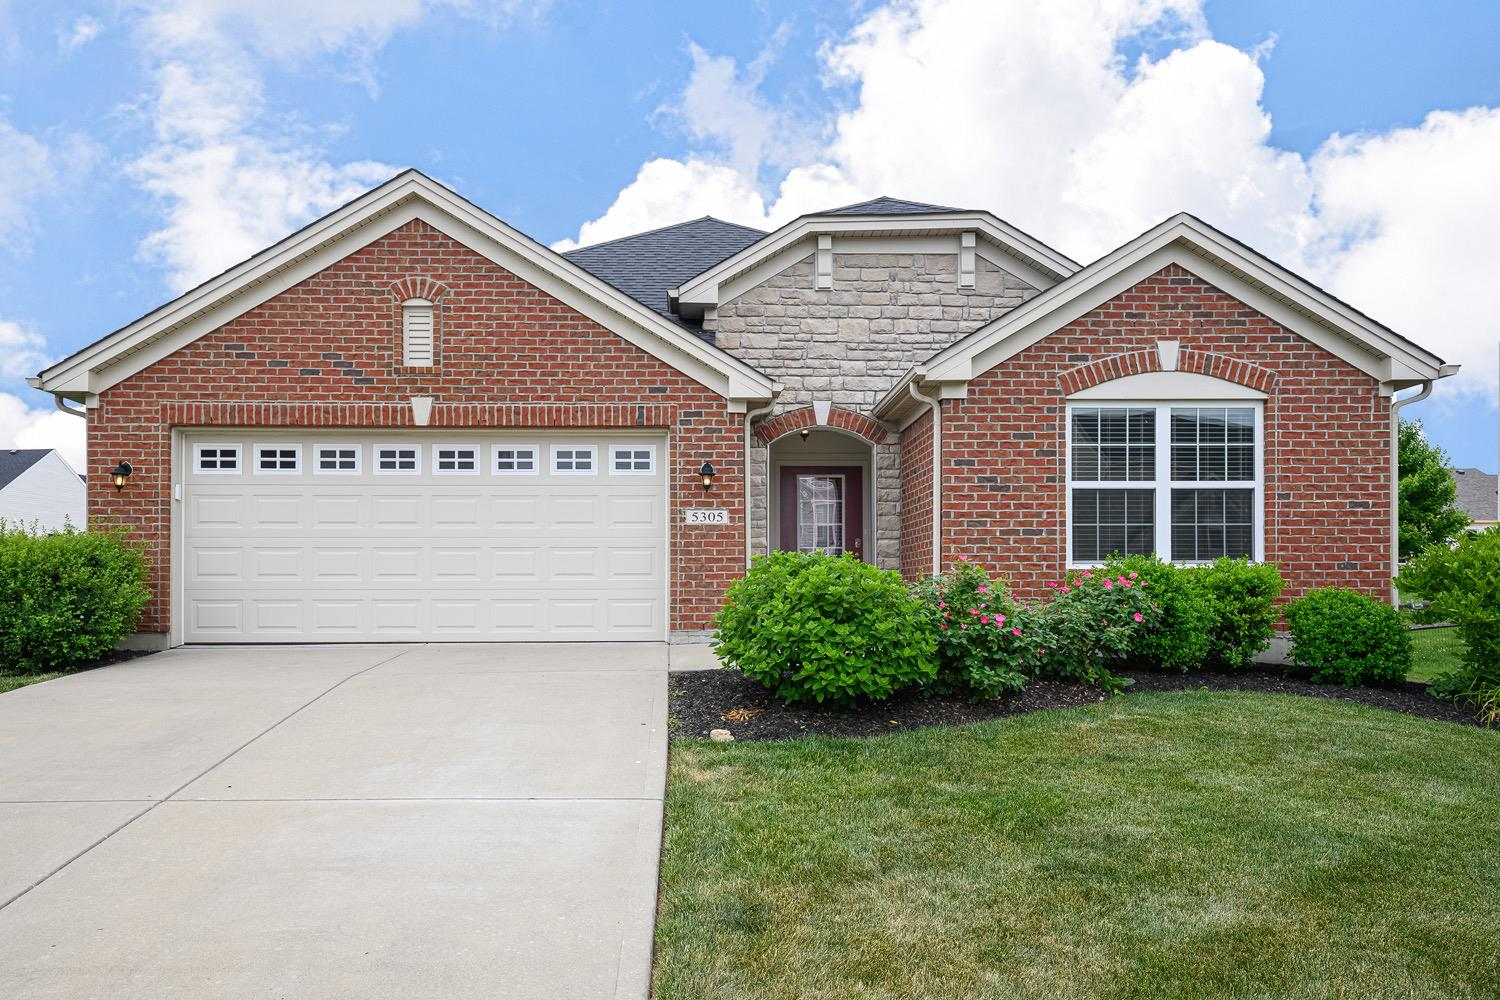 5305 Valley View Dr Hamilton Twp., OH